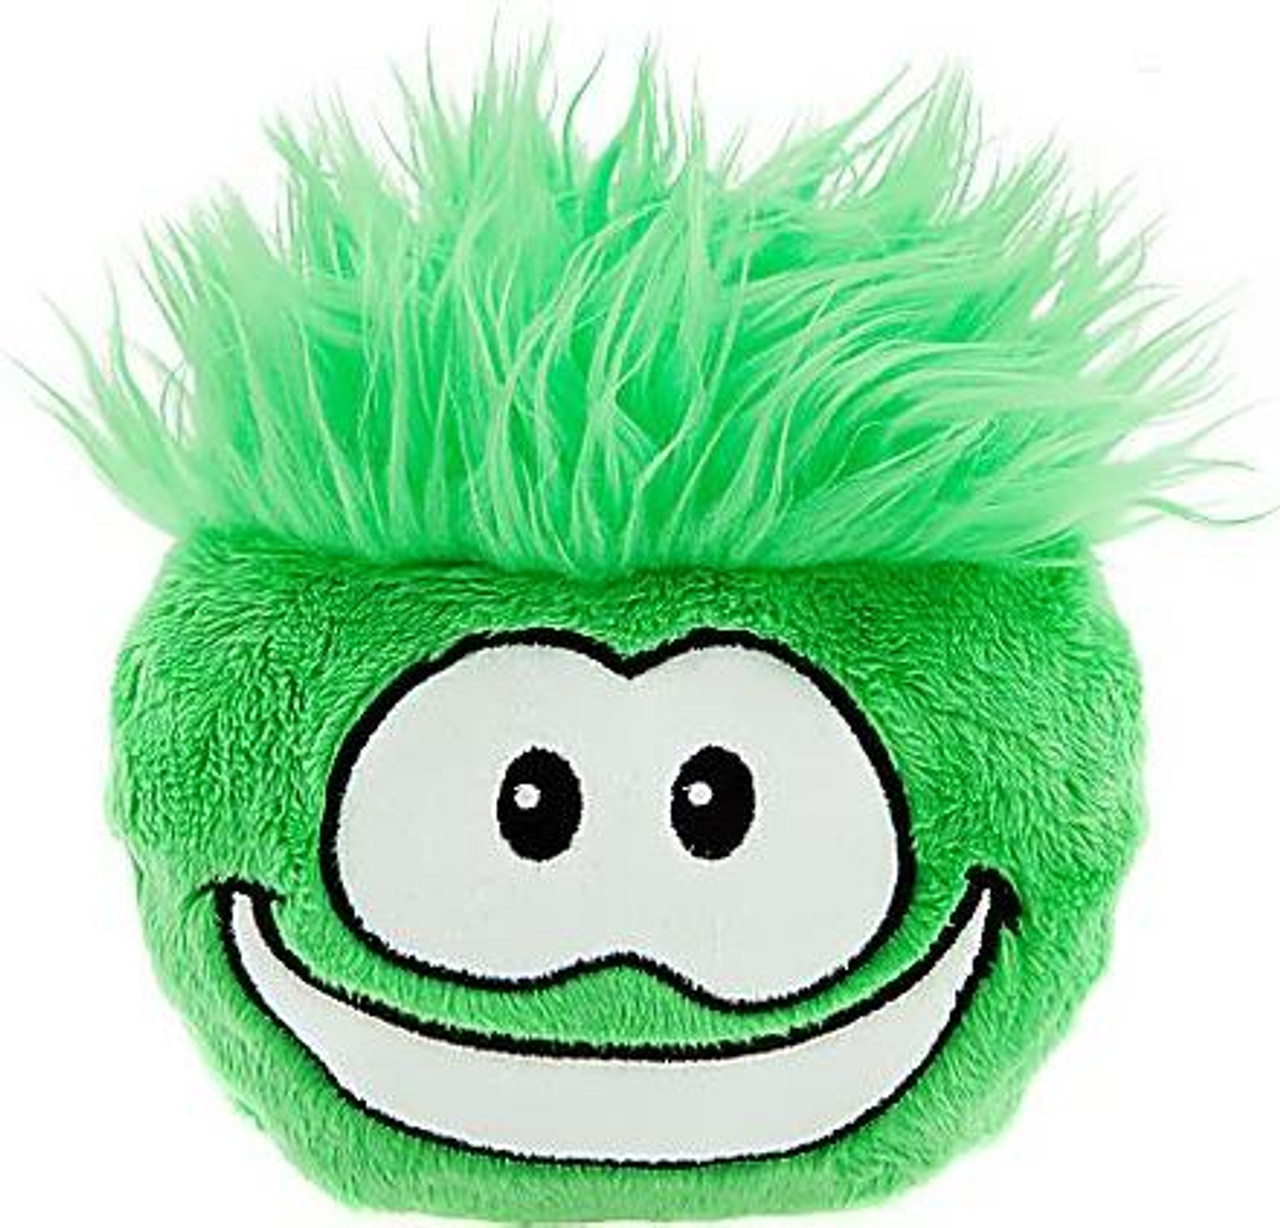 Club Penguin Green Puffle 6-Inch Plush